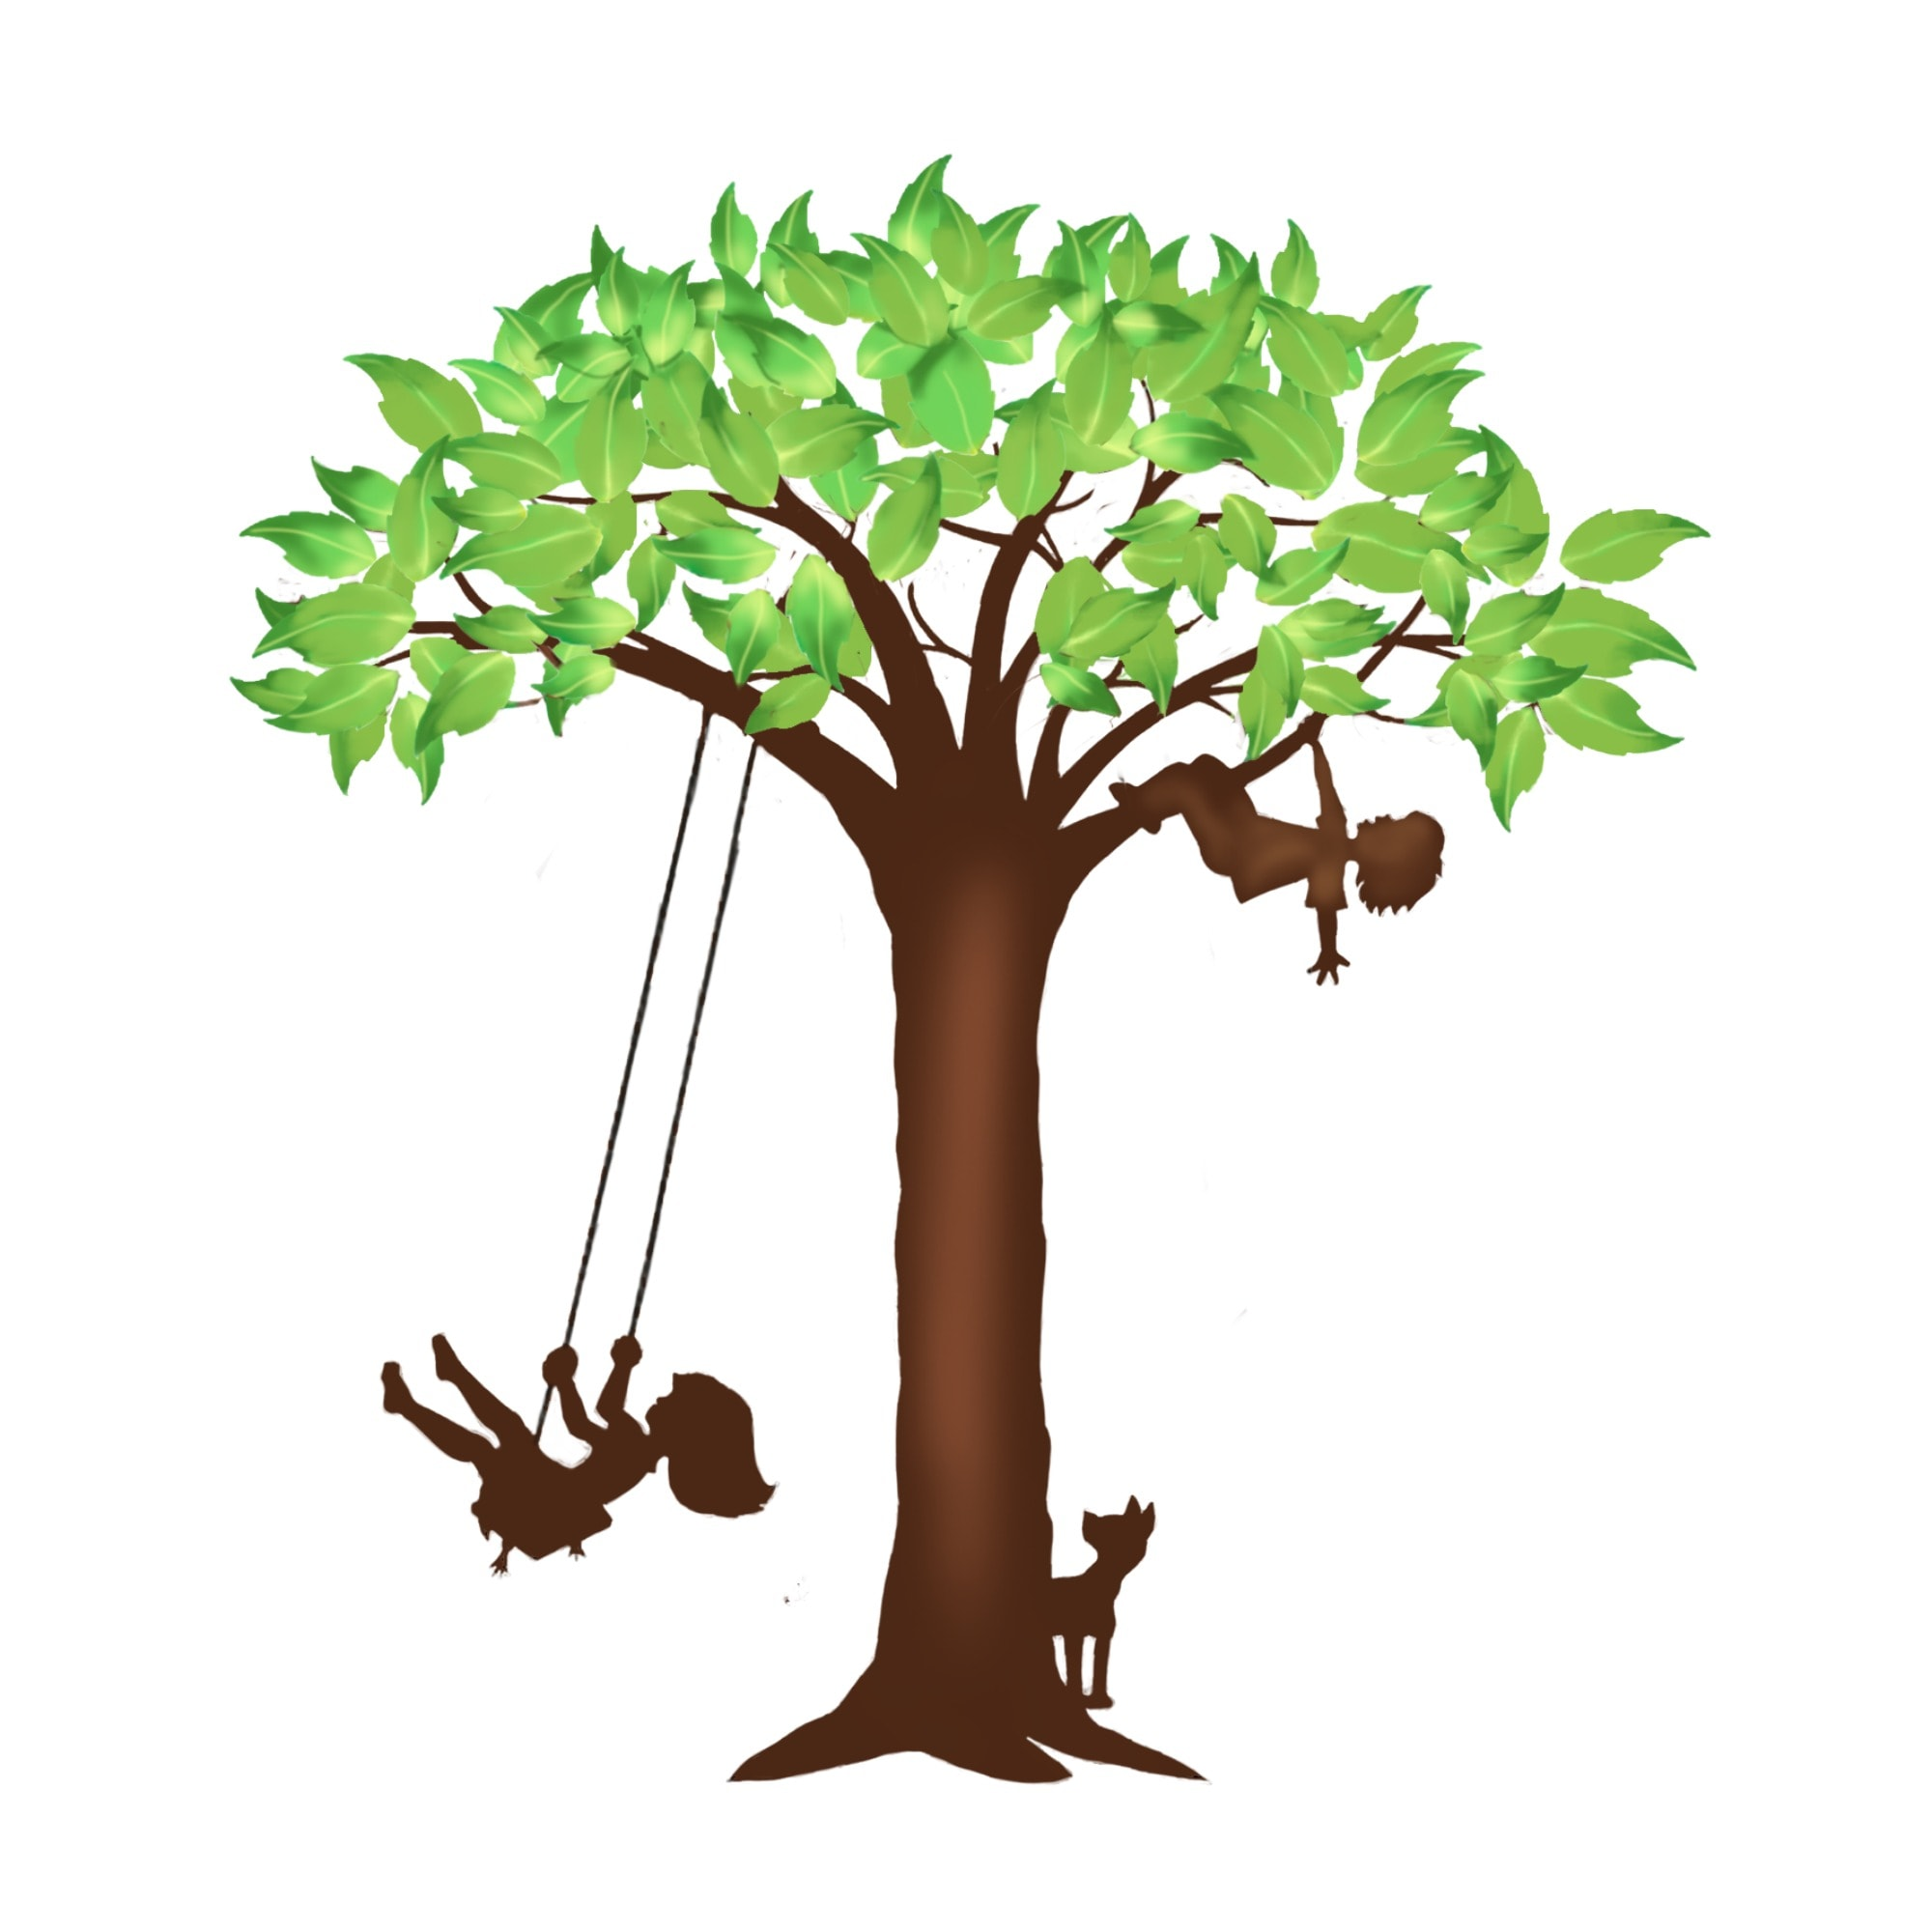 Rhythms of Play Tree logo with girl on swing, boy in tree, and dog under tree